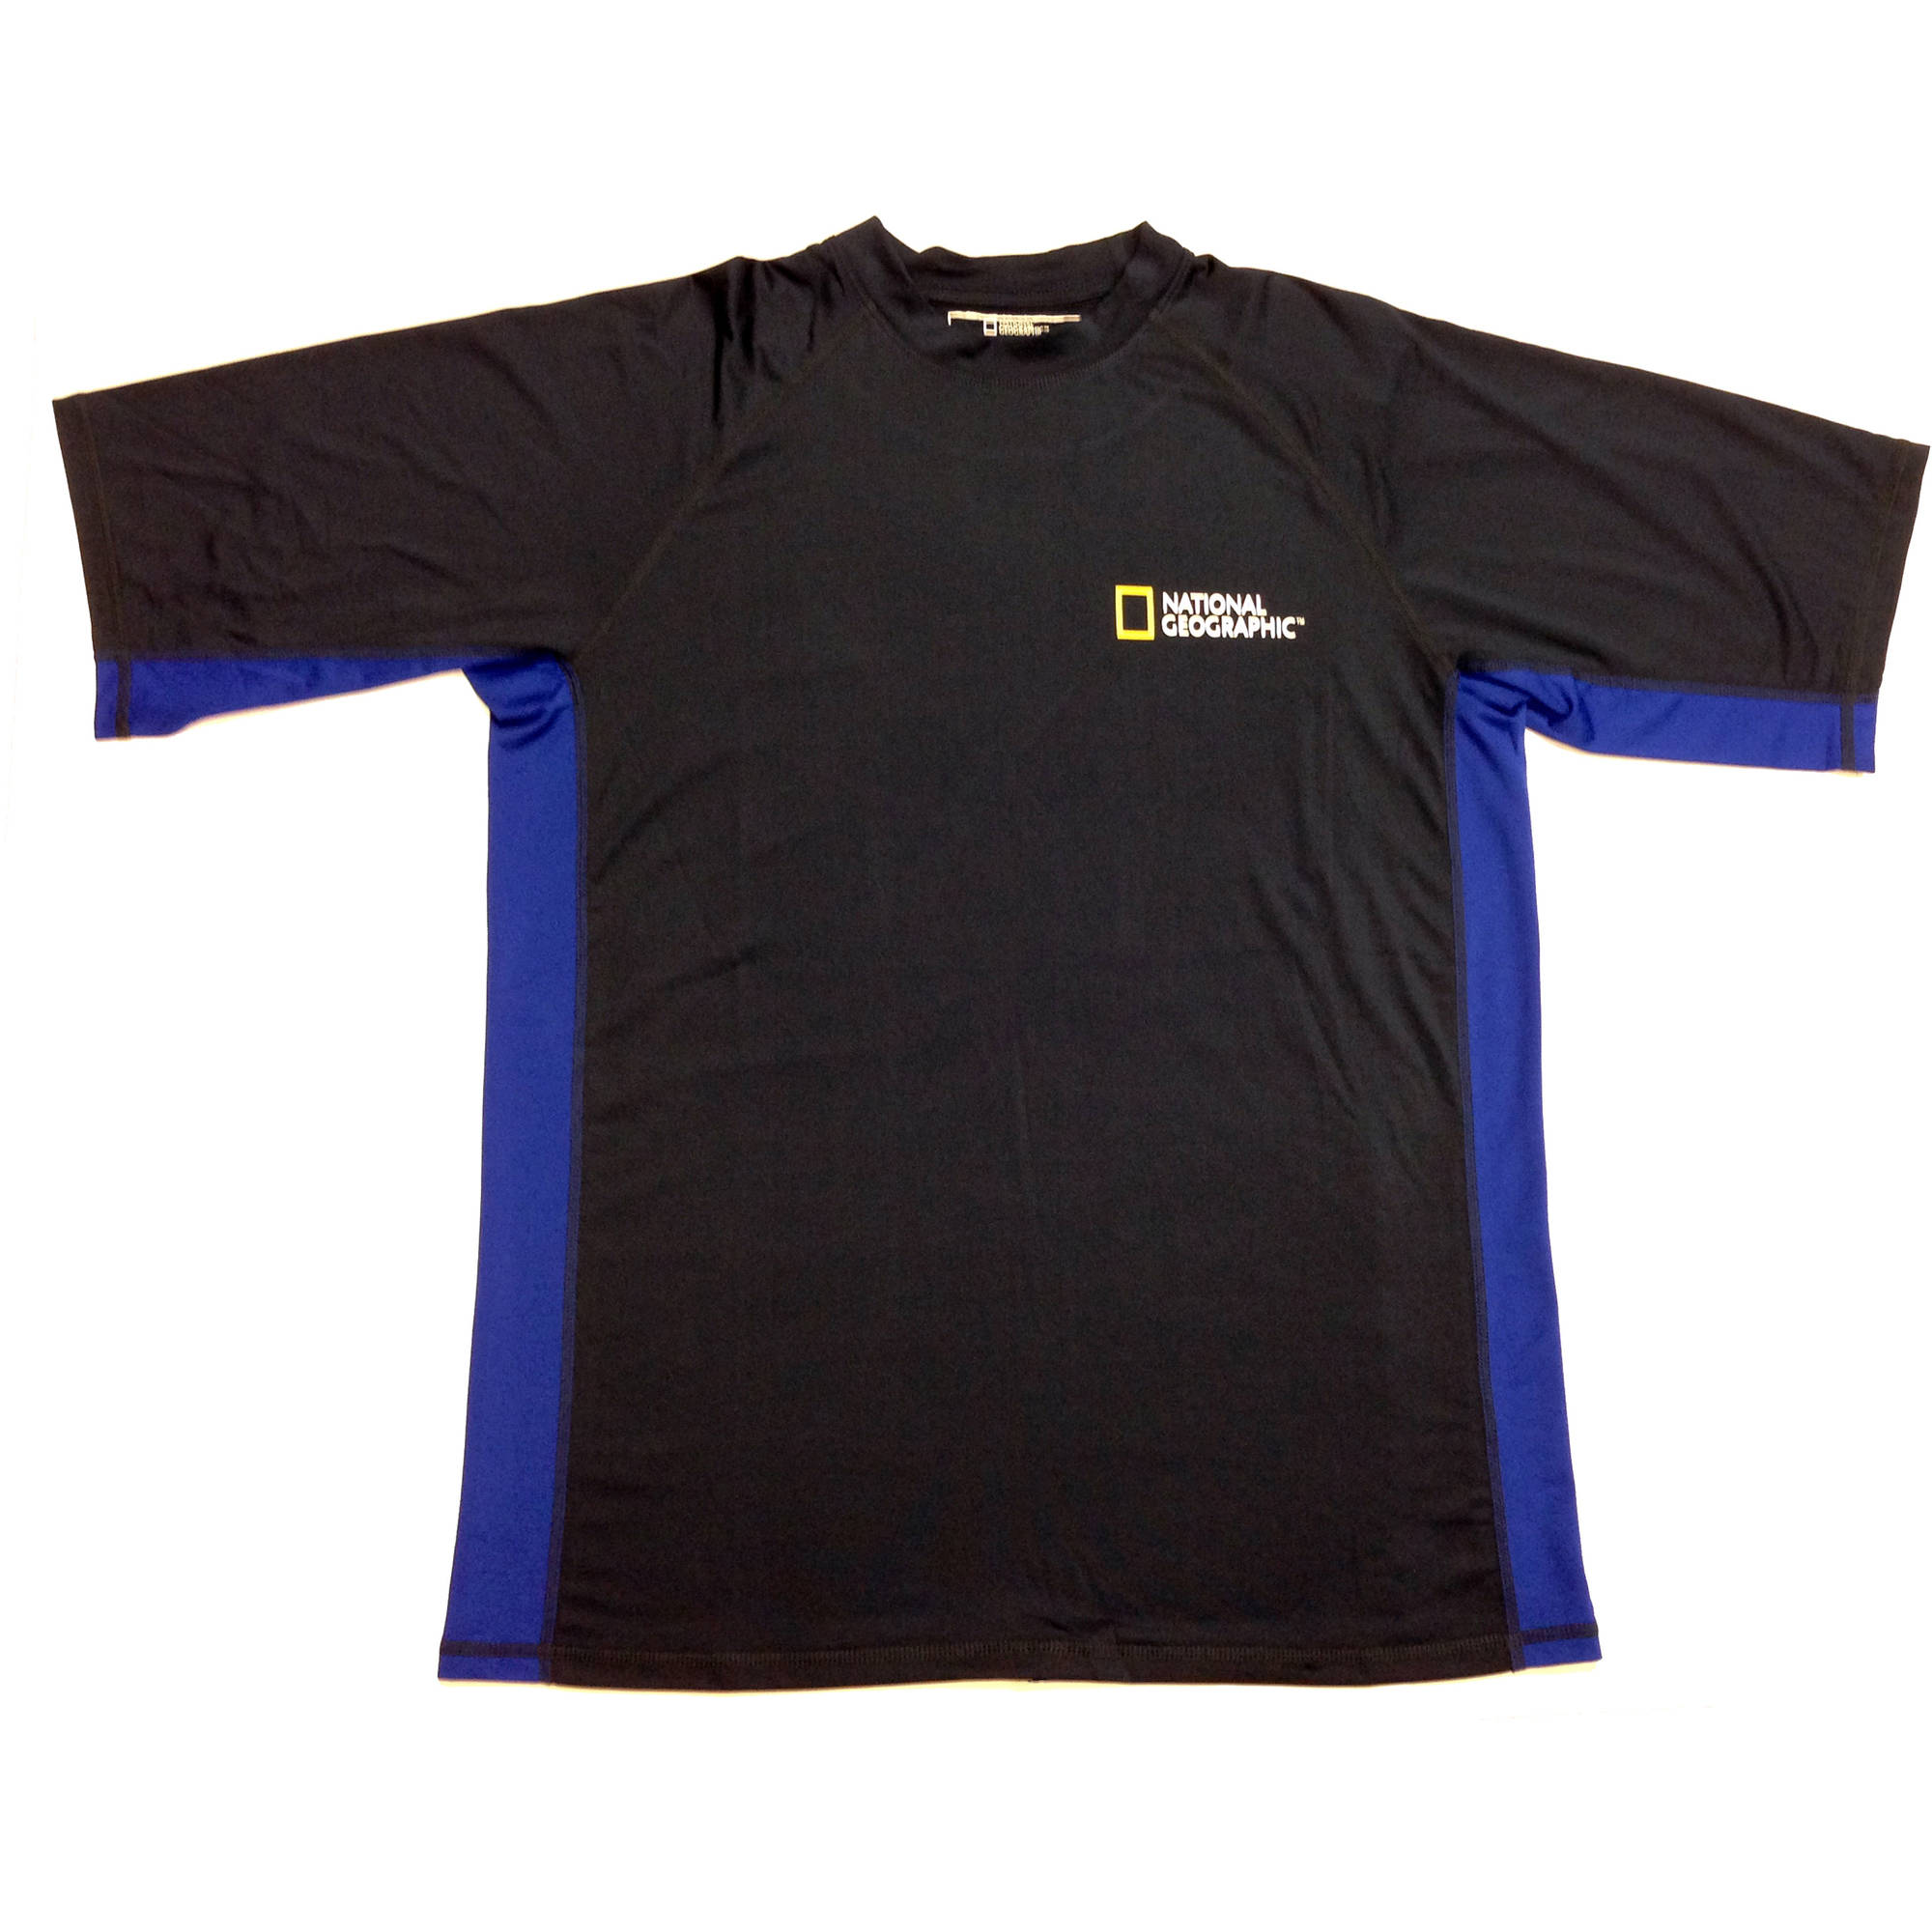 National Geographic Snorkeler Men's Short Sleeve Rash, Navy with Royal Blue, MD